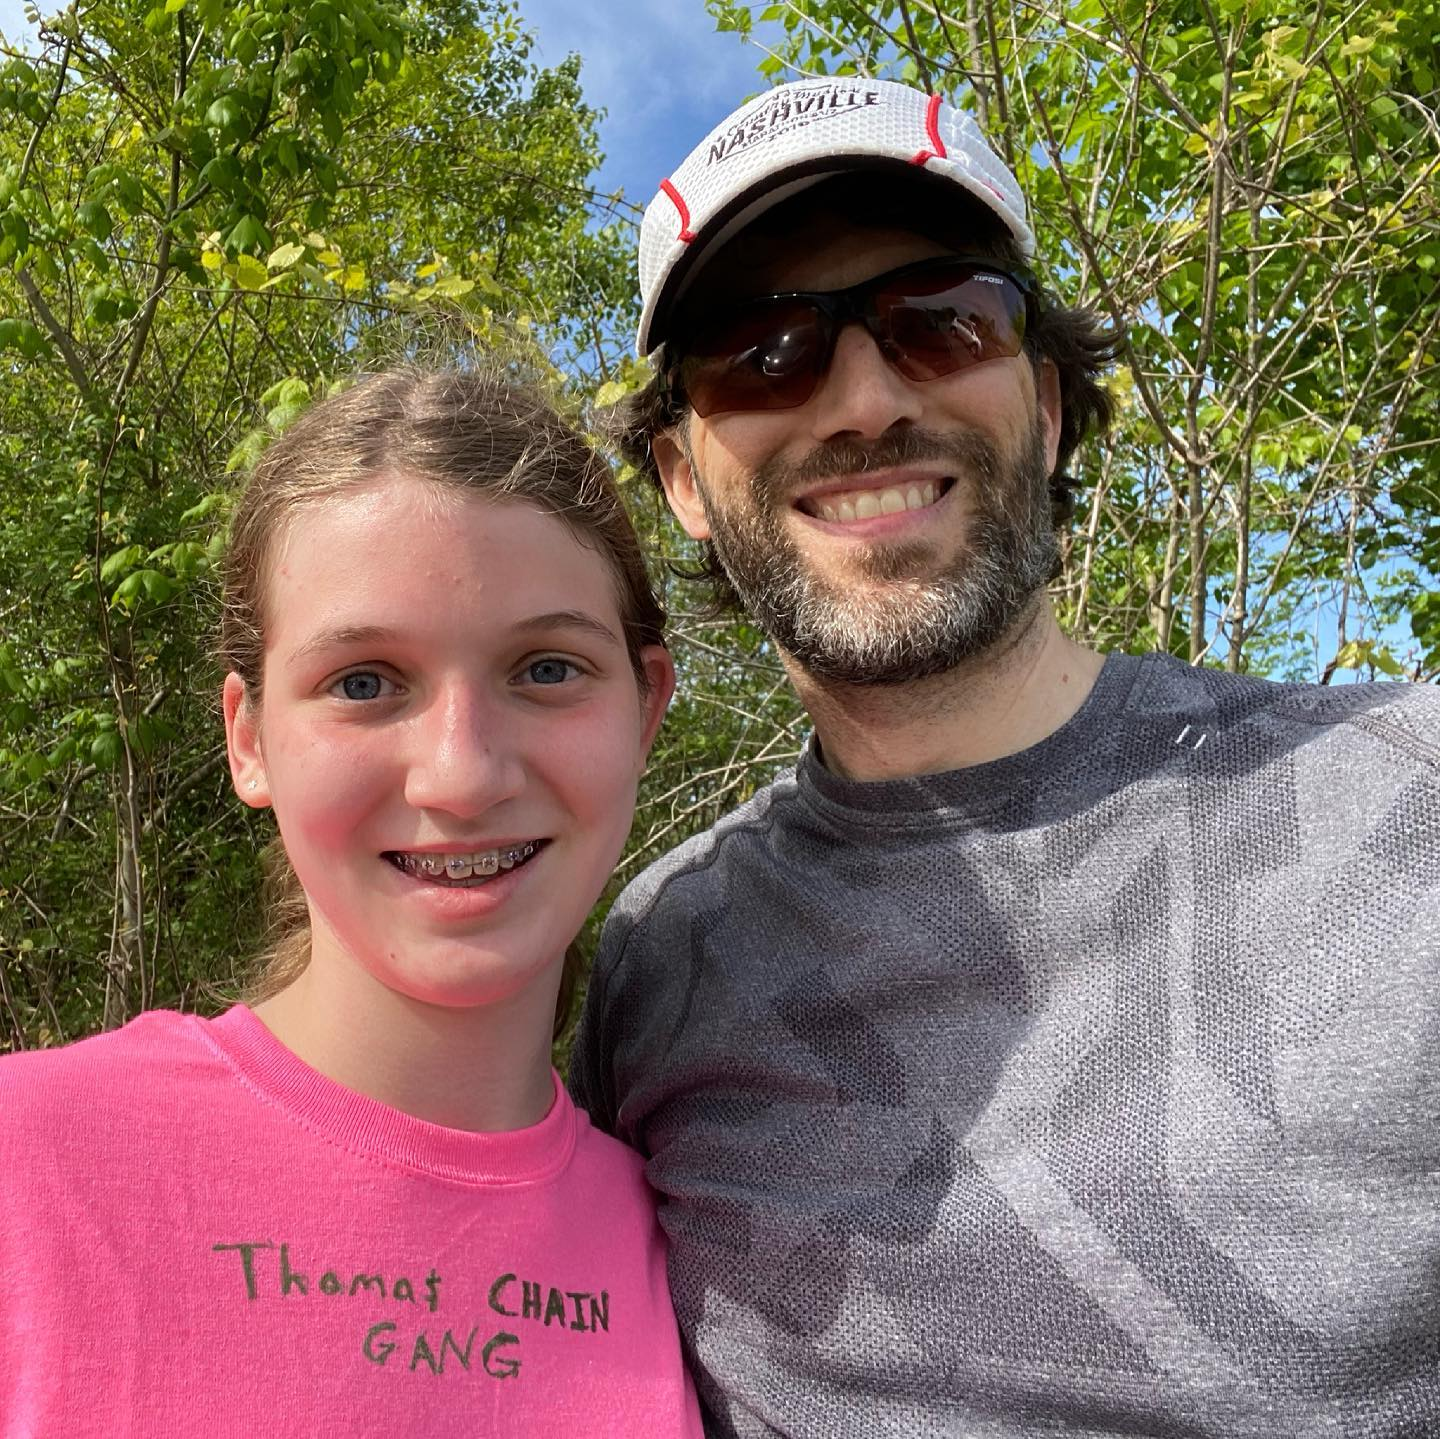 Finished a 2-mile run with this cutie today. She asked if I would help her start training for the fall cross-country season. This means that my sabbatical from running is now over, and it felt good to get out there again. #family #running